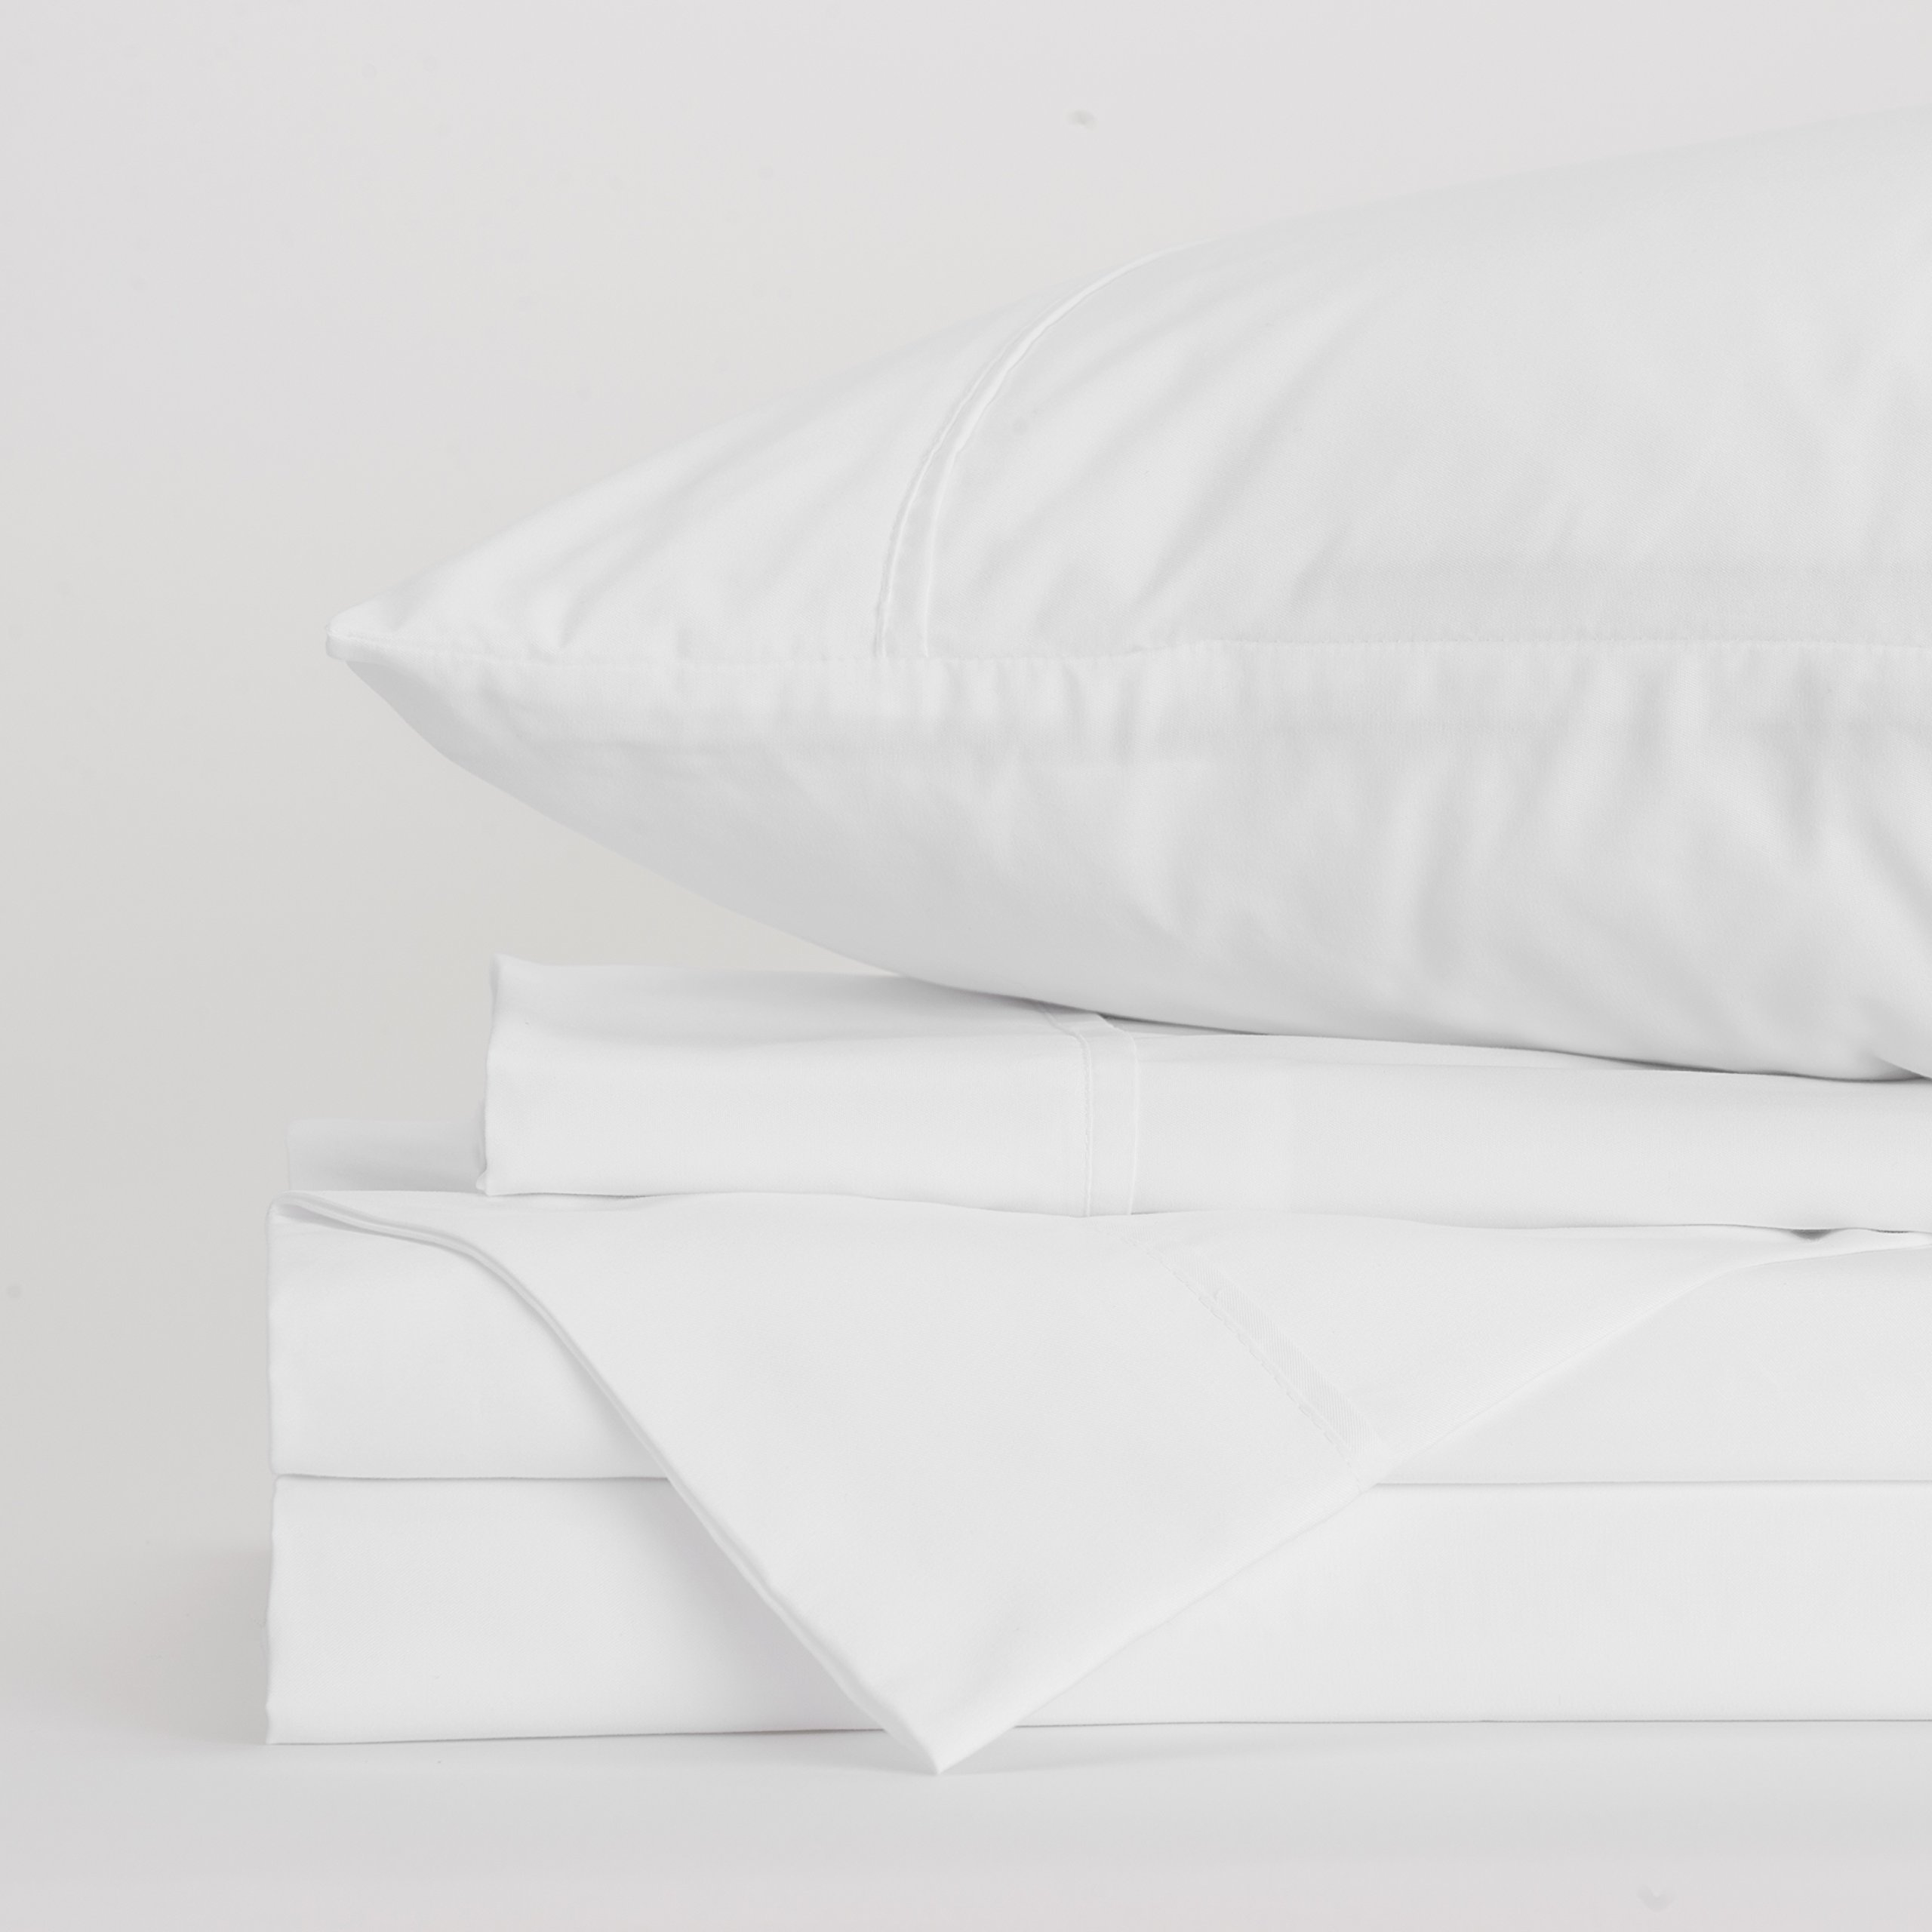 Jennifer Adams Home Lux Collection Sheet Set, 4-Piece Luxury Bed Sheets, Hypoallergenic and Wrinkle Free, Includes 1 Fitted Sheet, 1 Flat Sheet, and 2 Pillowcases (King, White)